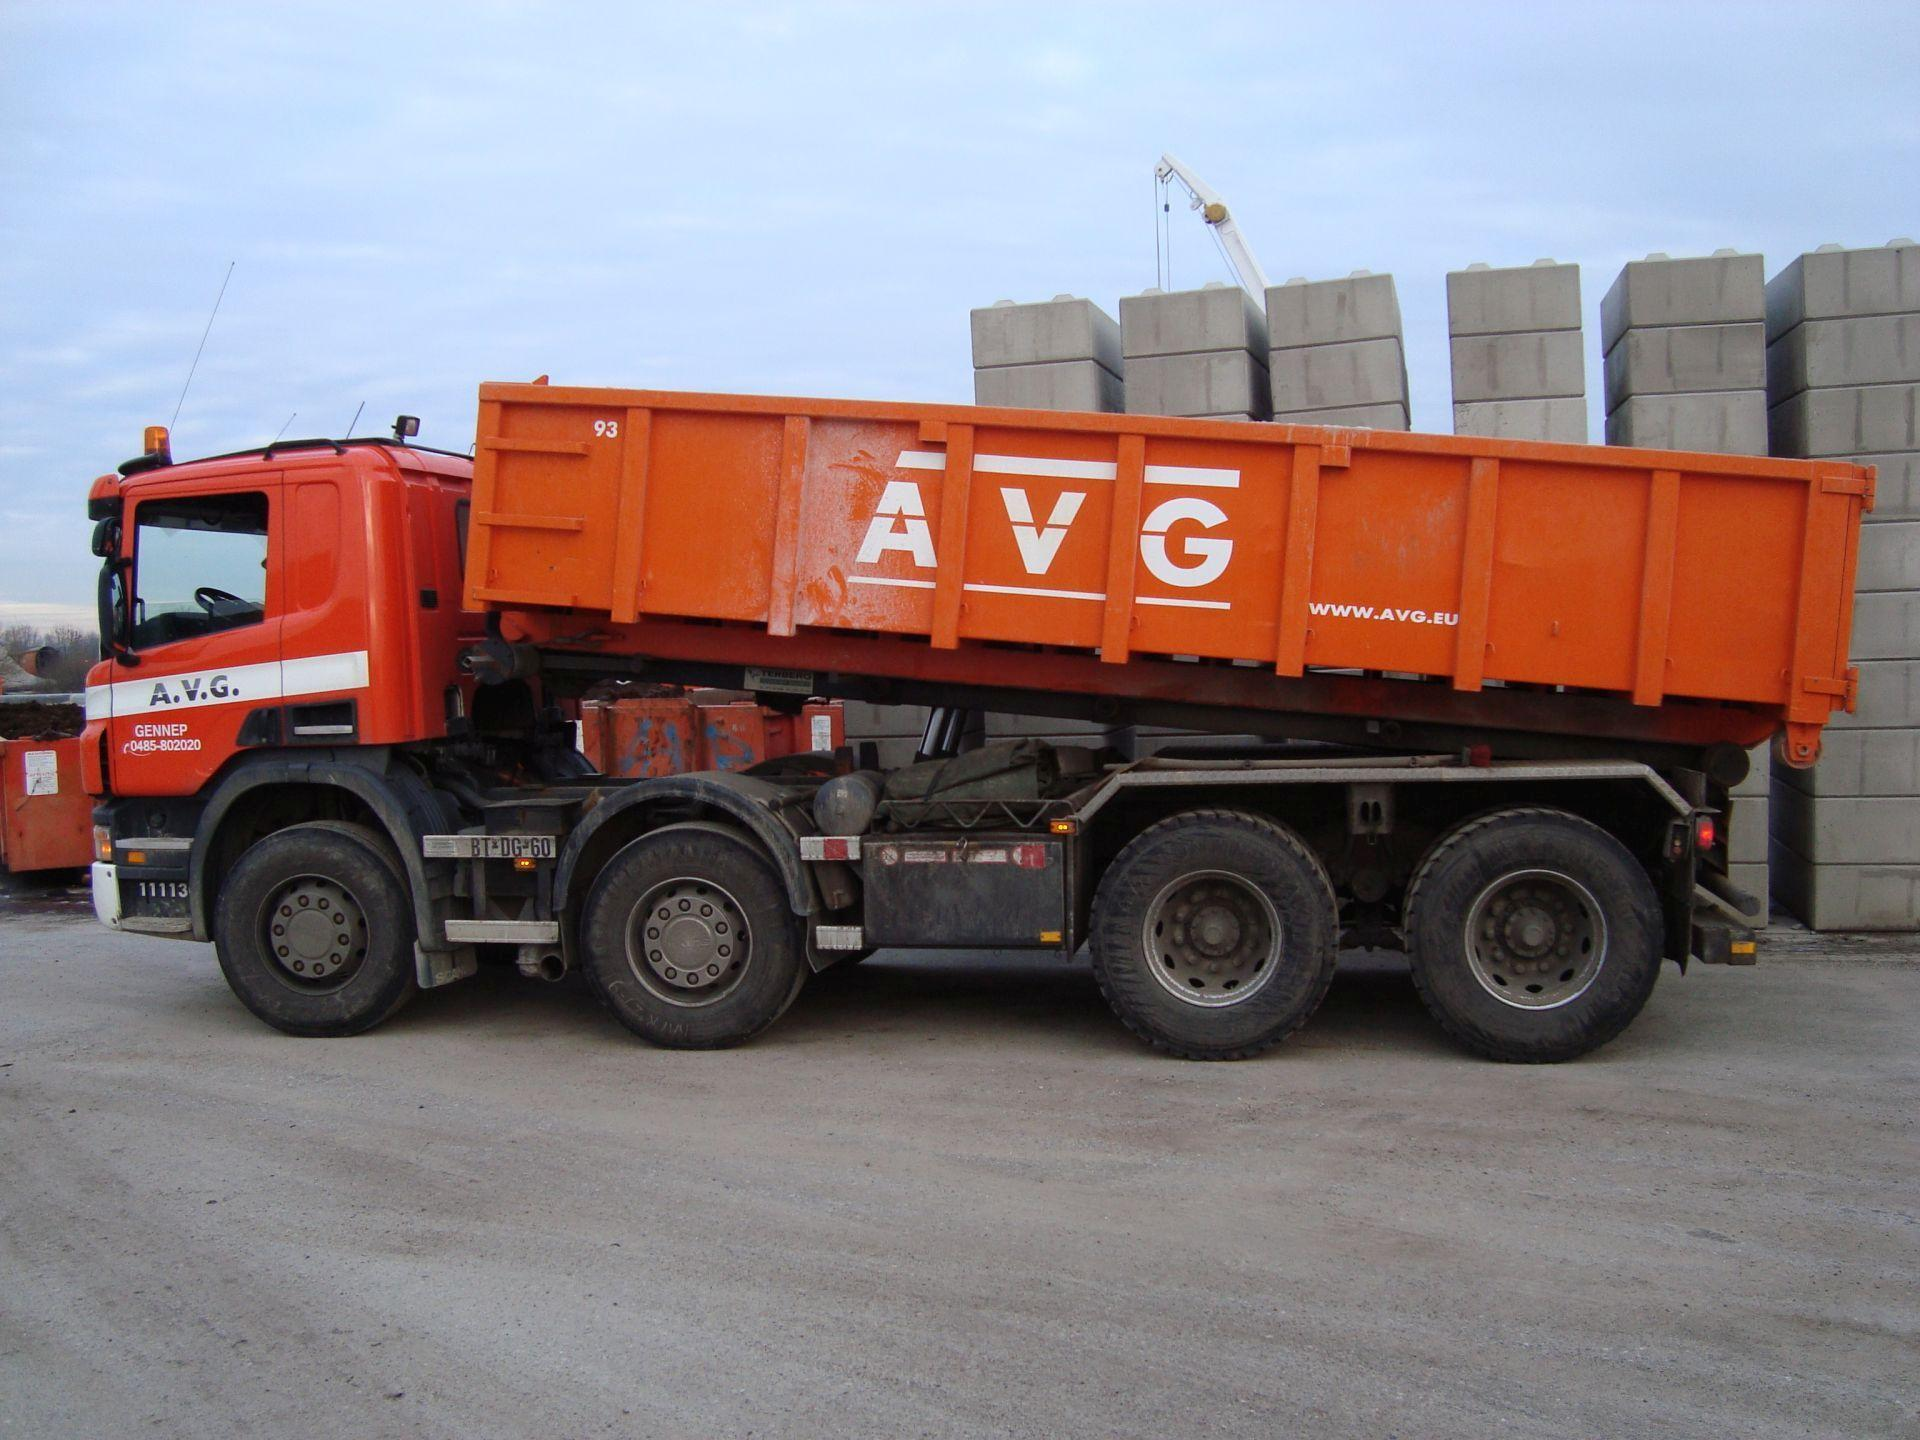 lange-container-3-avg-bouwstoffen